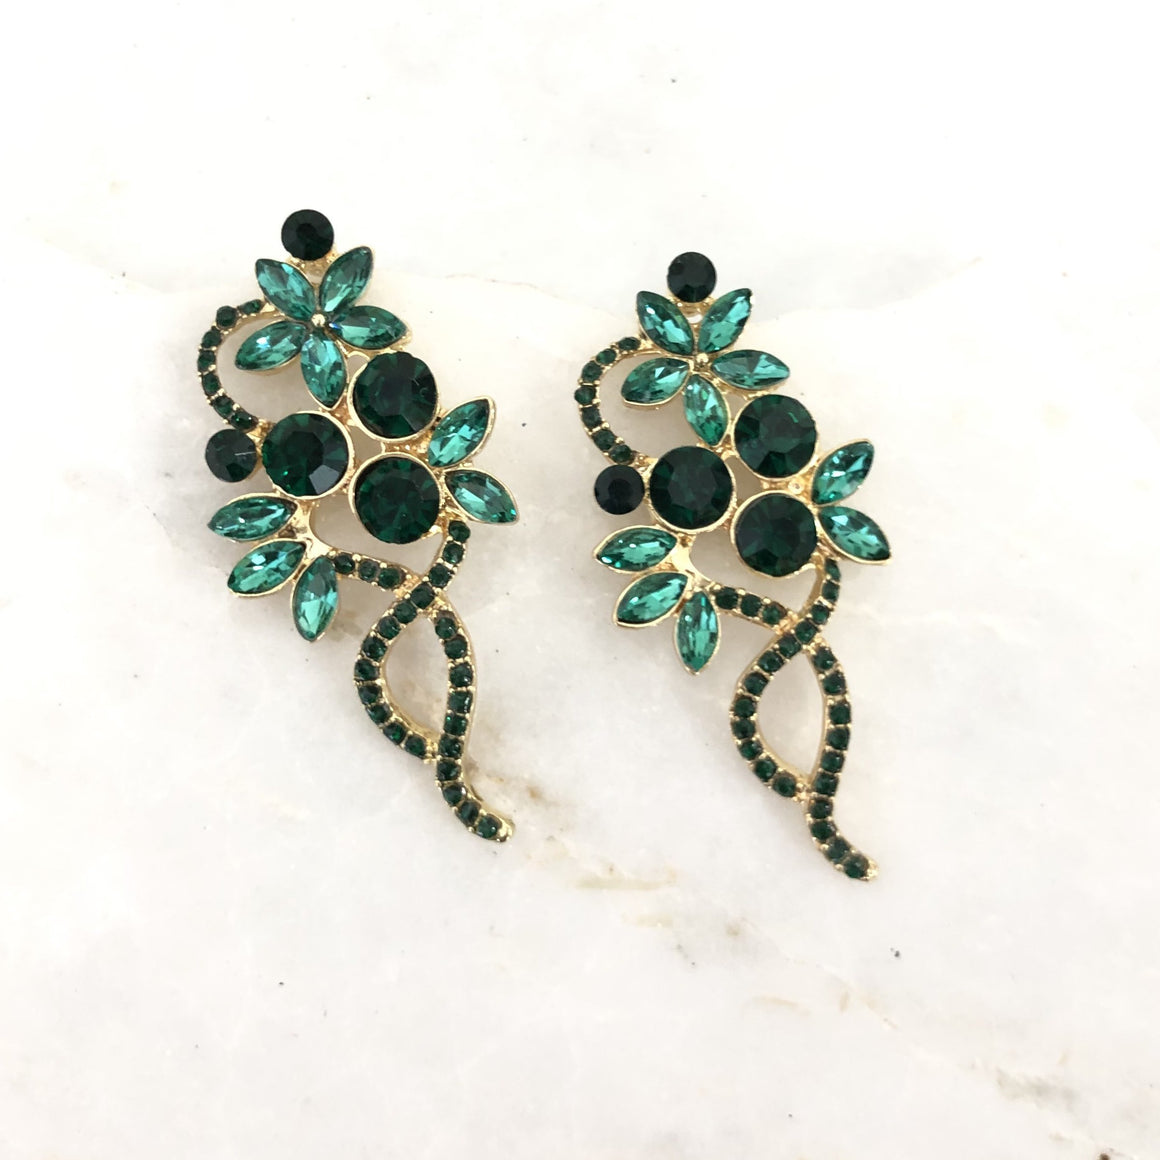 Emerald City Crystal Earrings